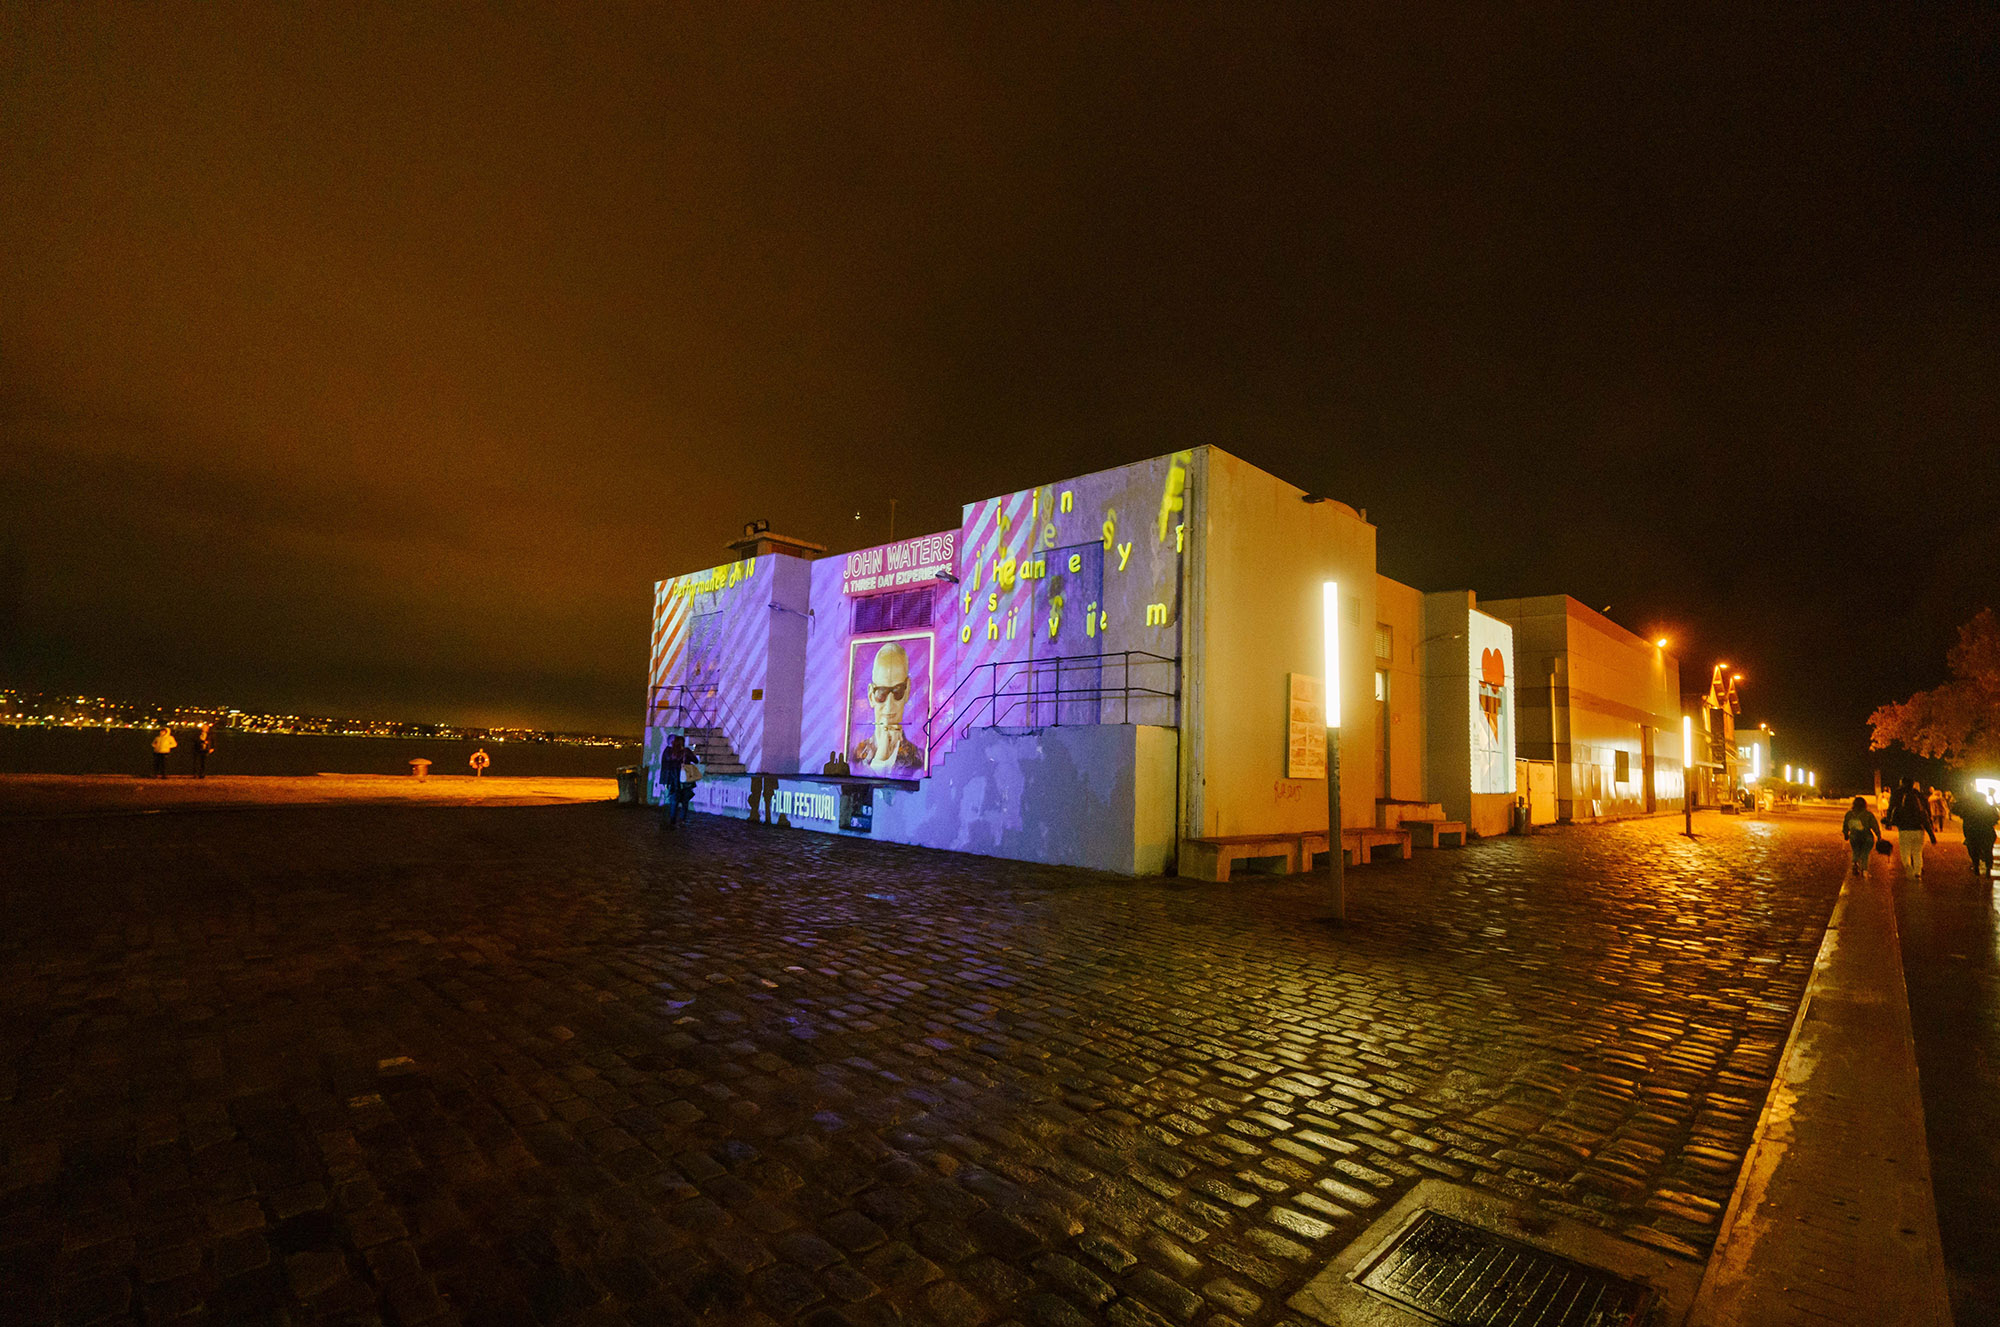 Video mapping installation by Stathis Mitsios at the Port of Thessaloniki